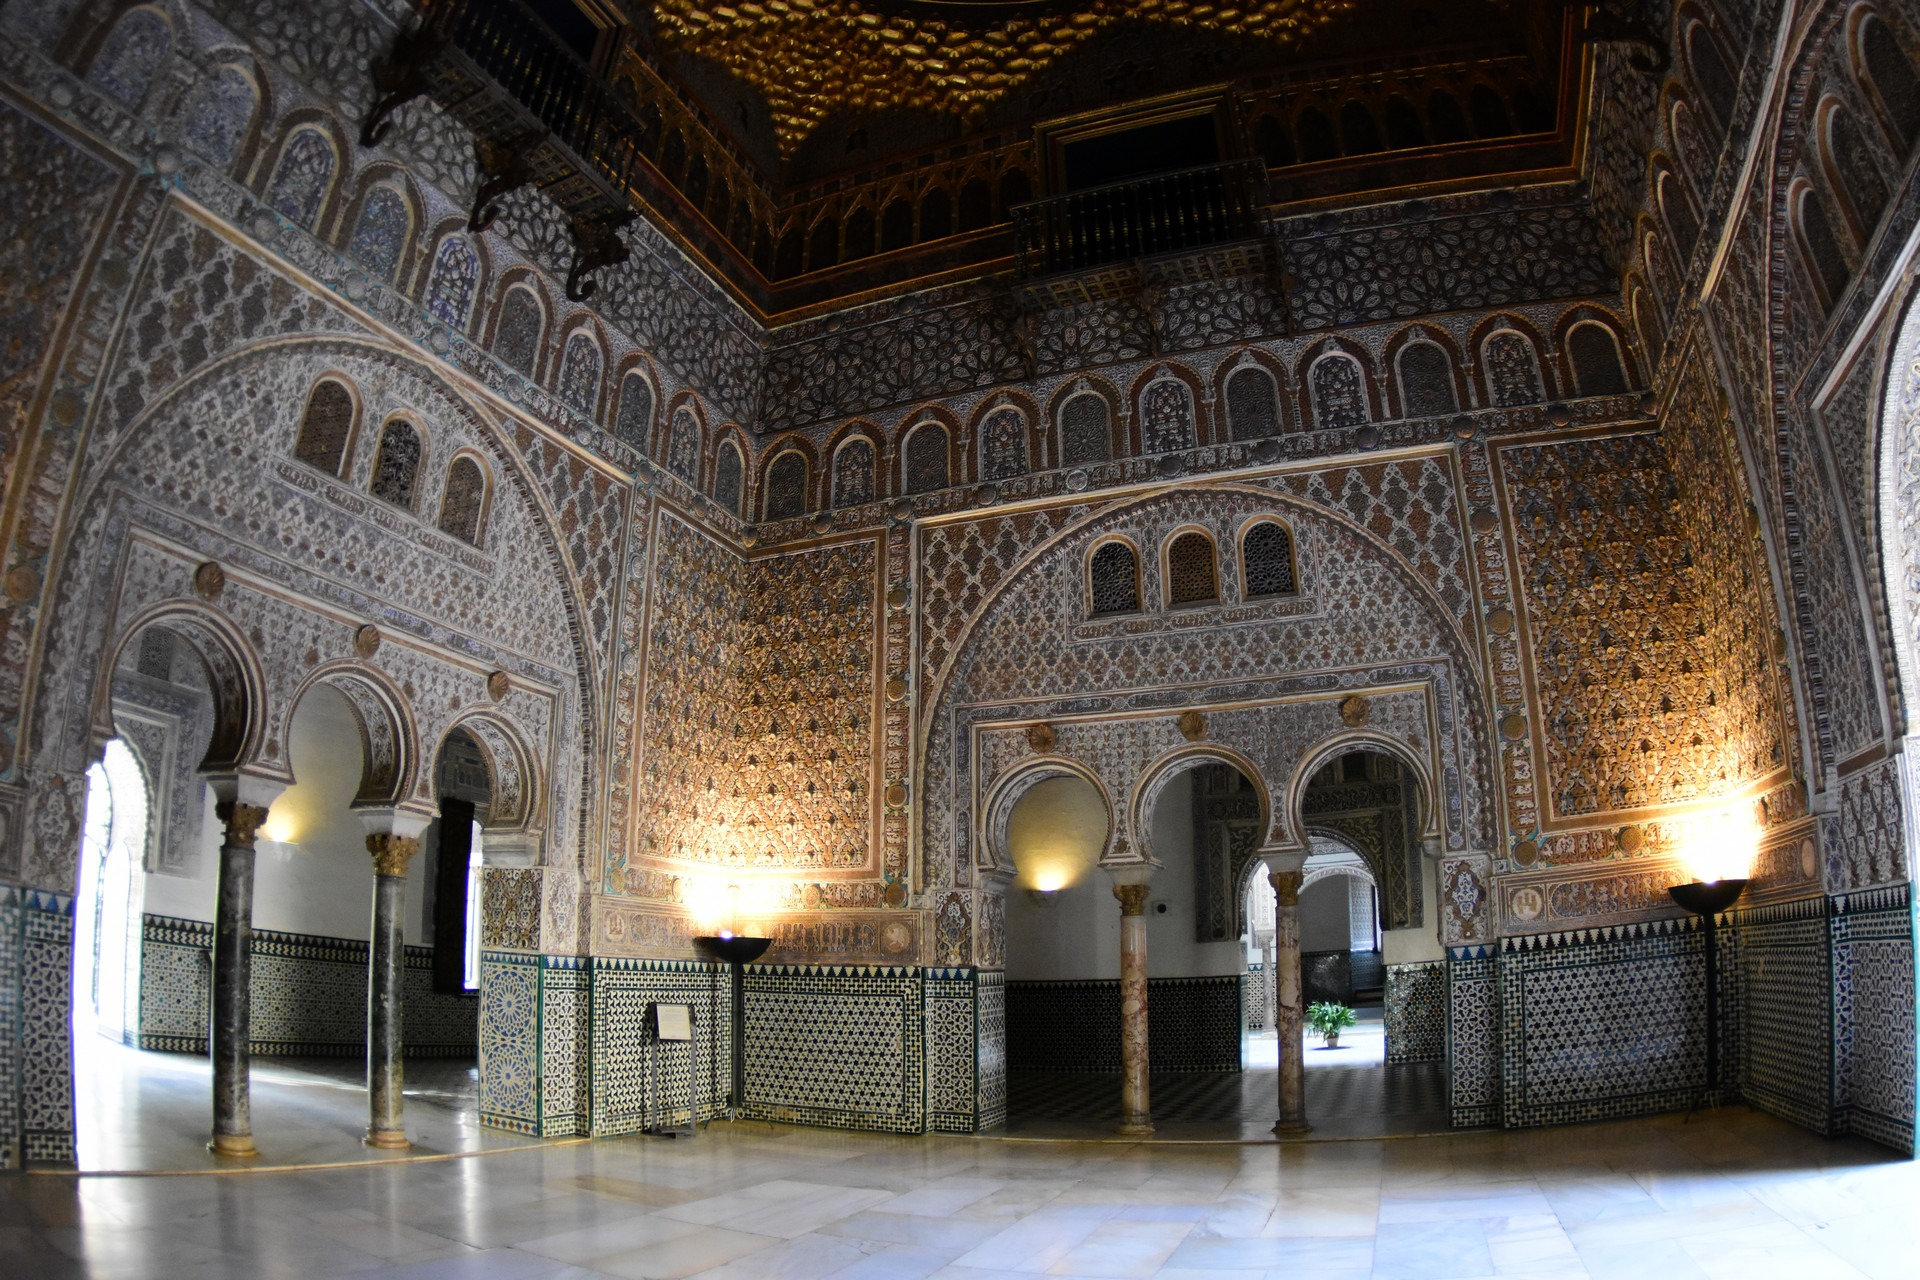 Spain – Seville: Cathedral & Royal Alcazar